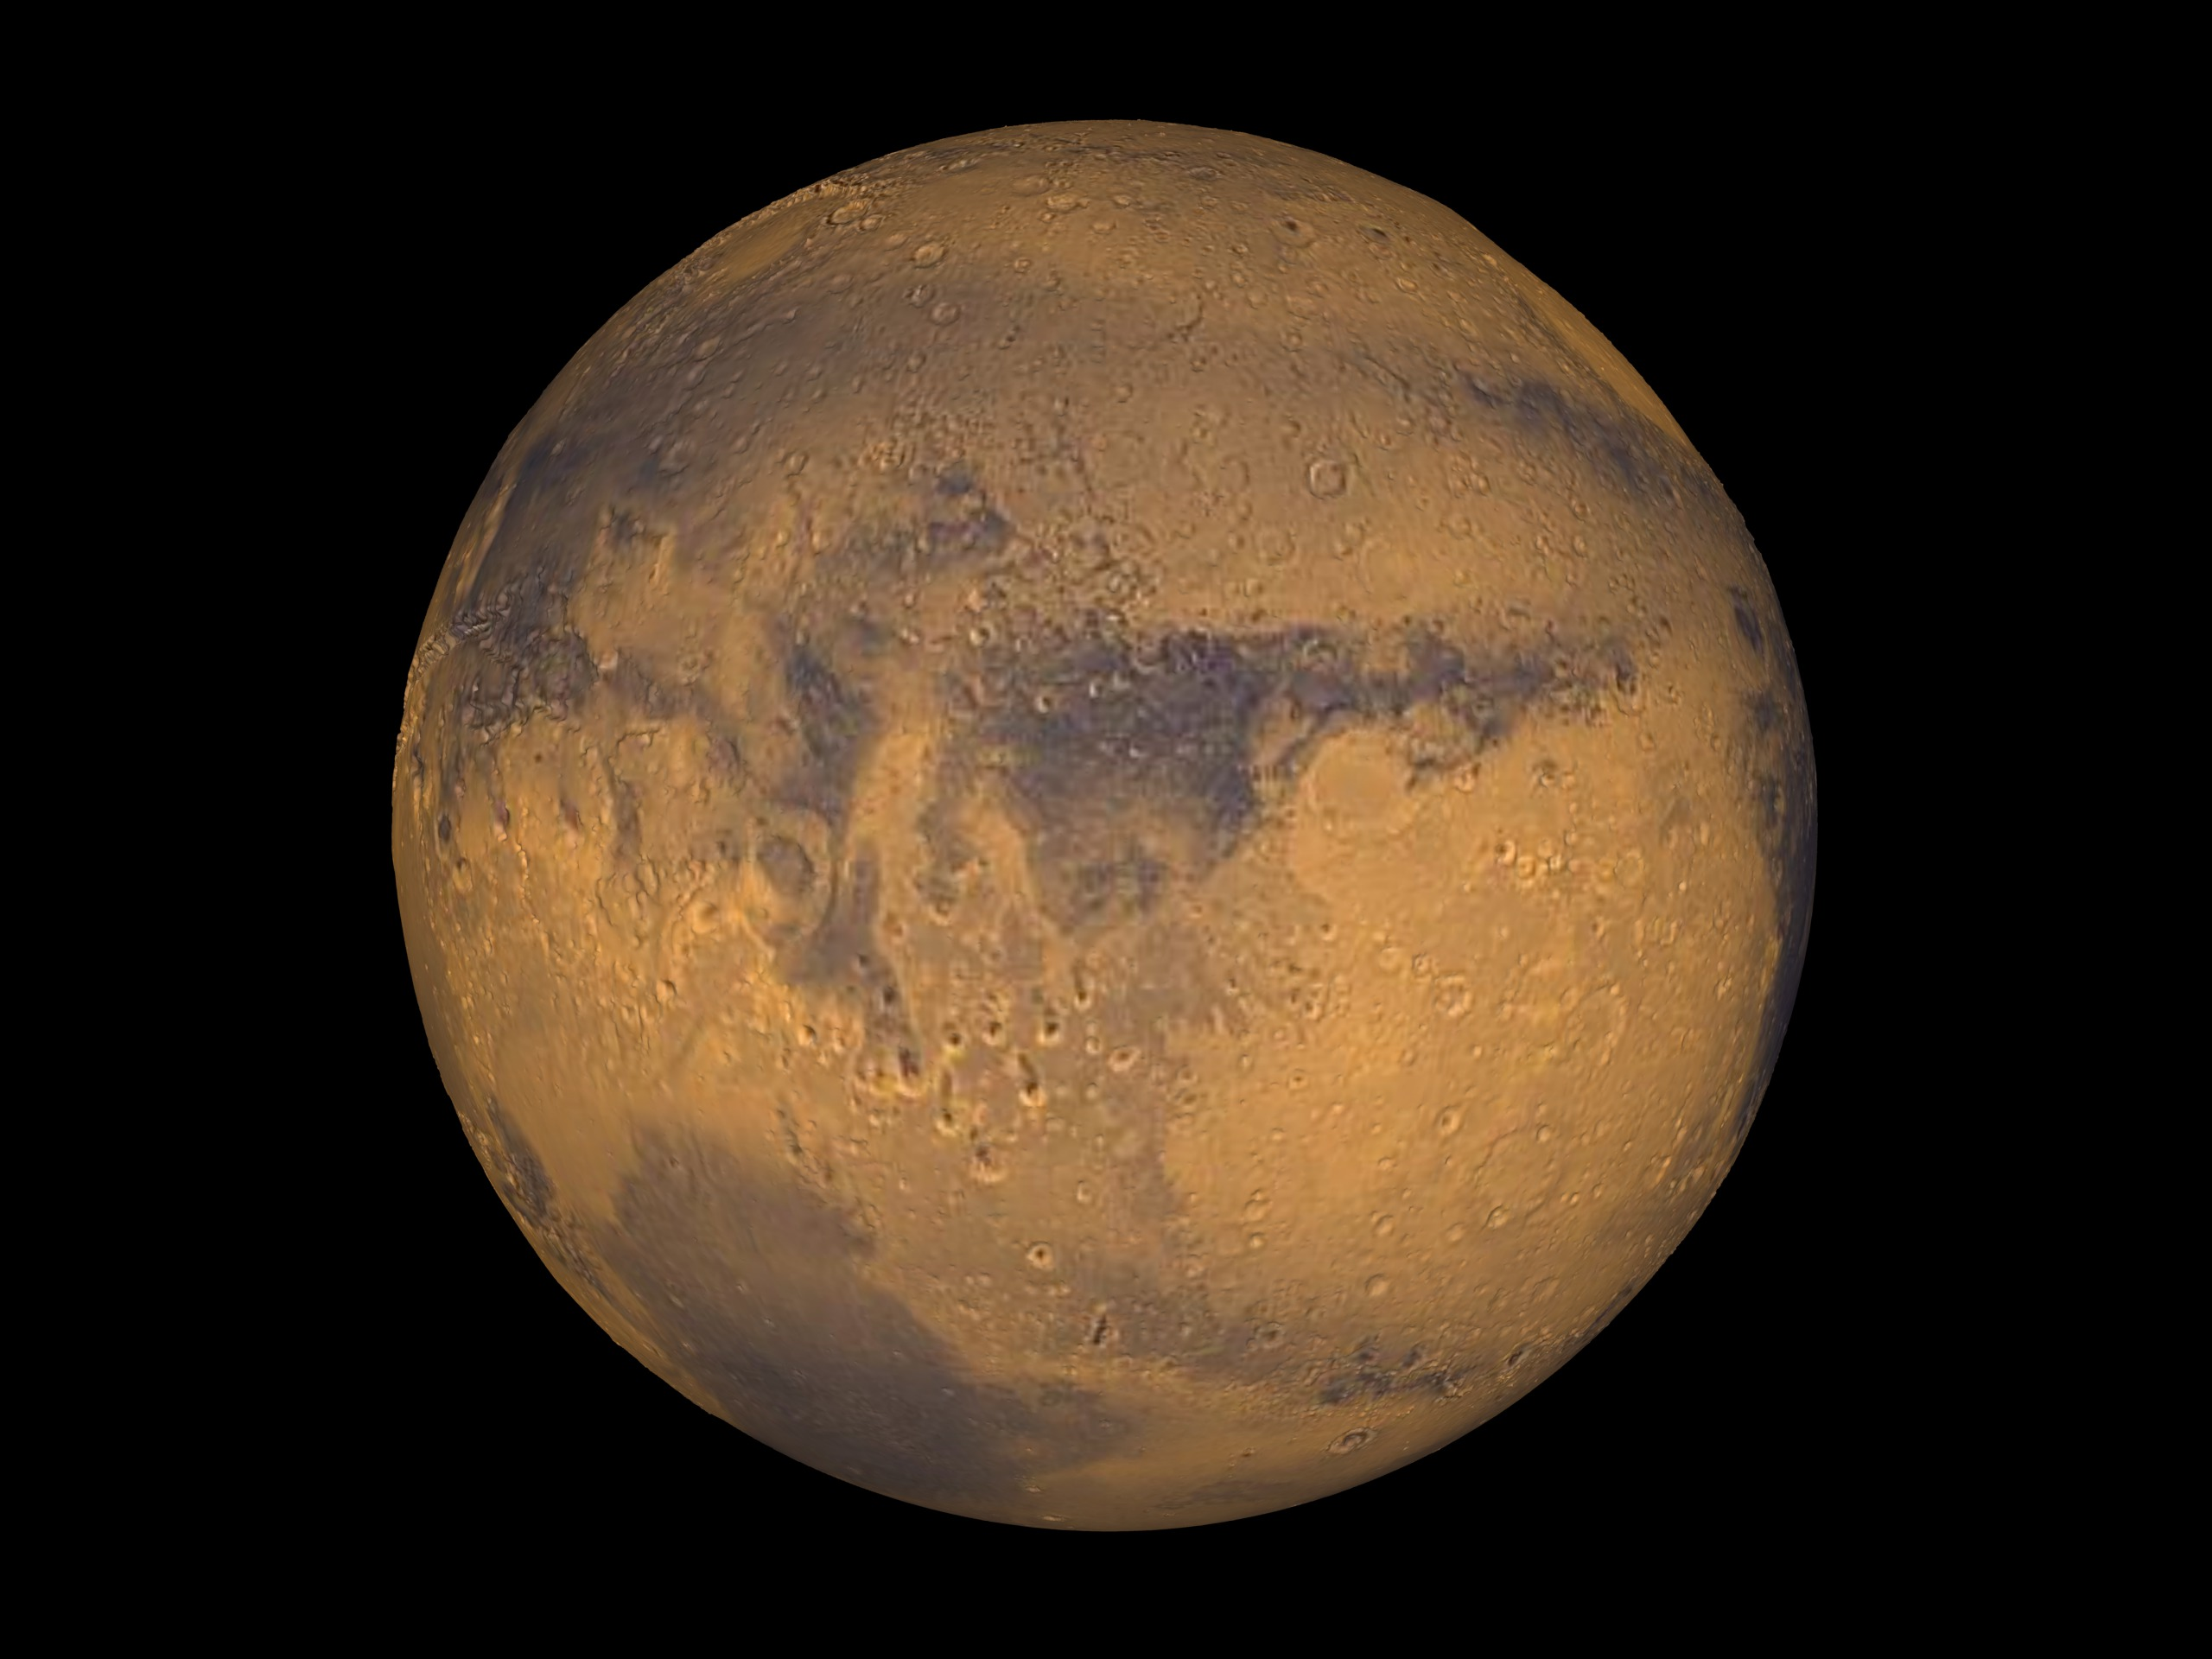 Send Your Name to Mars on NASAs Next Red Planet Mission  NASA